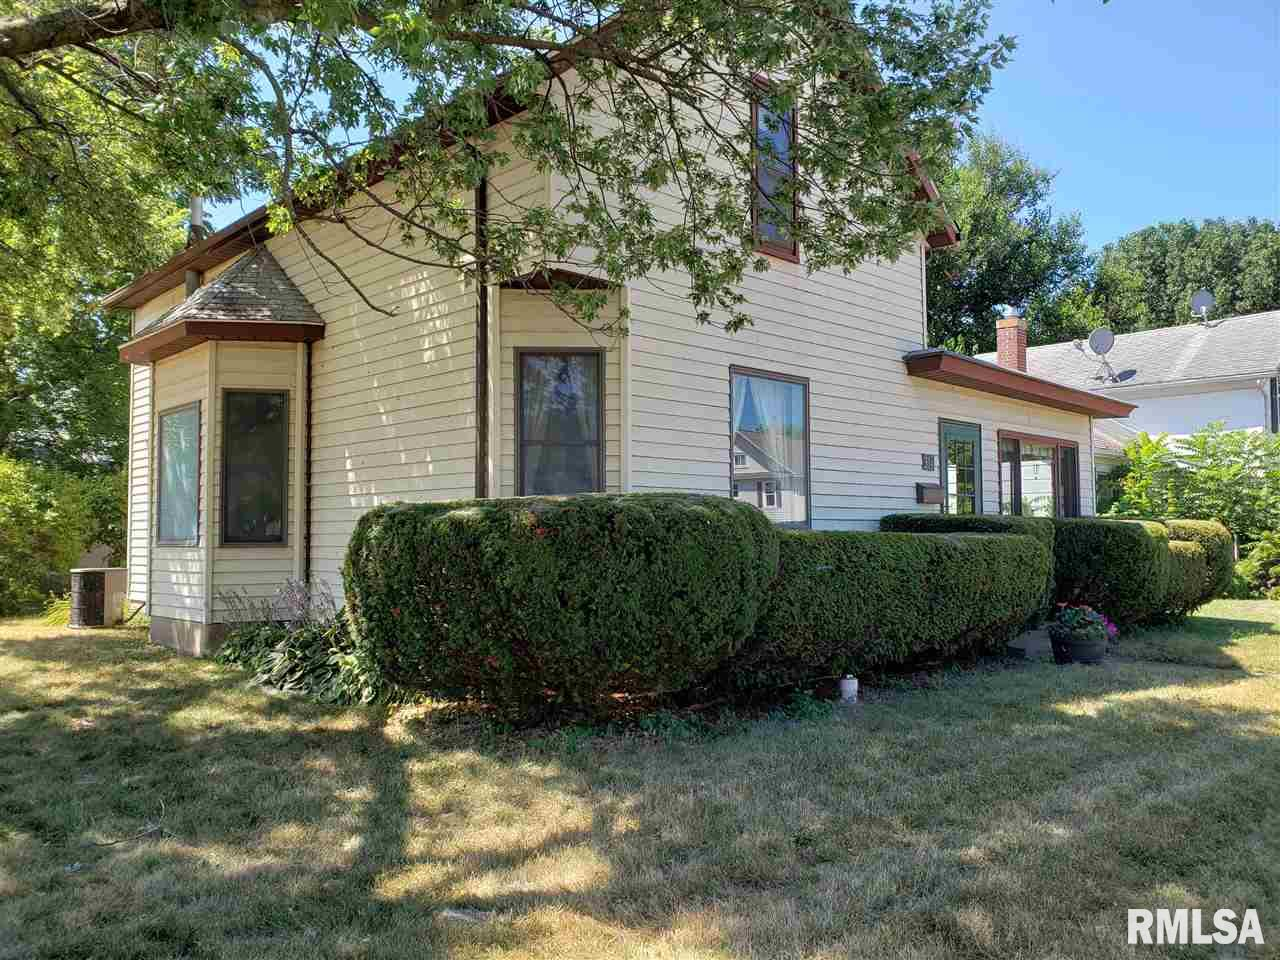 """This listing also includes parcel number 01-28-334-001 Total of .25 acres of in town living. What a great opportunity  3 bed 1 bath home waiting for new owners. Lots of added pluses here. 4 car garage (deep) separate play house that is """"2"""" stories that has electric run to it, new stove and main floor laundry.  Bathroom completed remodeled down to the studs. 2012 roof partial tear off and replaced. This home for its era still shows charm and personality, but it will need some work.  Cash or conventional financing only"""